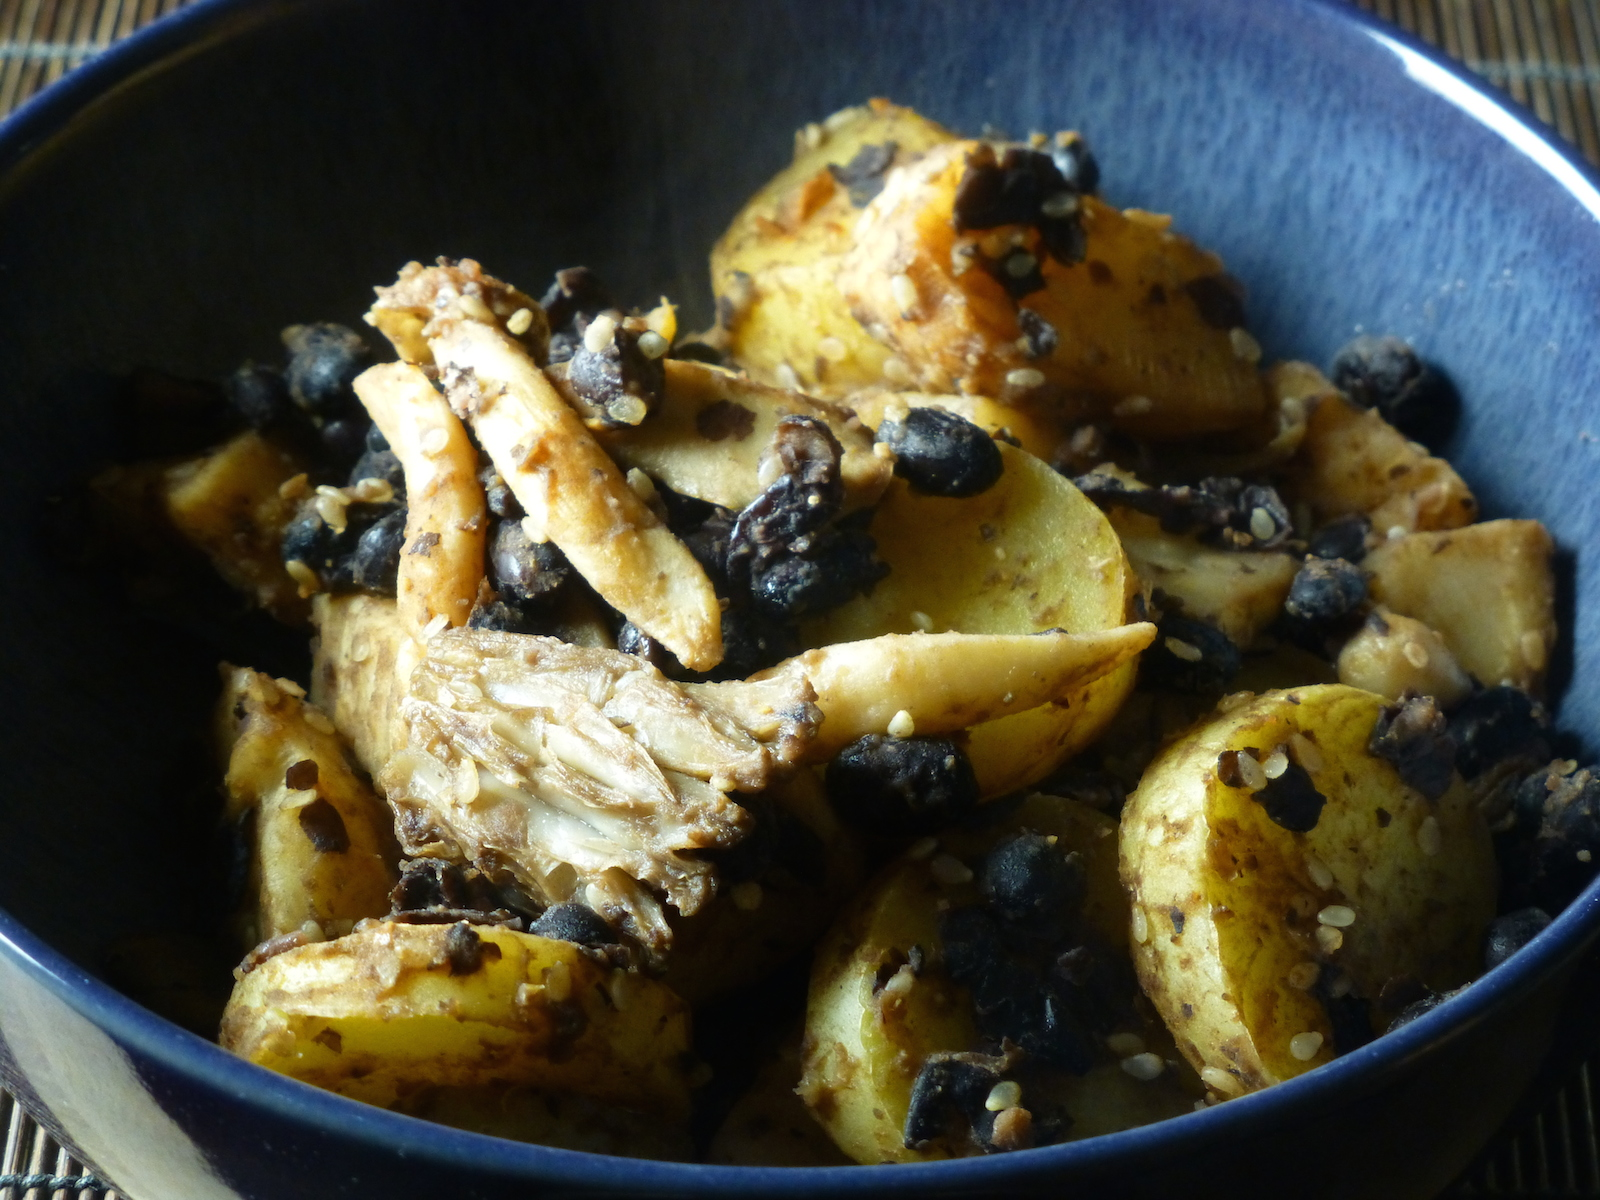 Stir-fry of mixed mushrooms with black beans, celeriac and potatoes